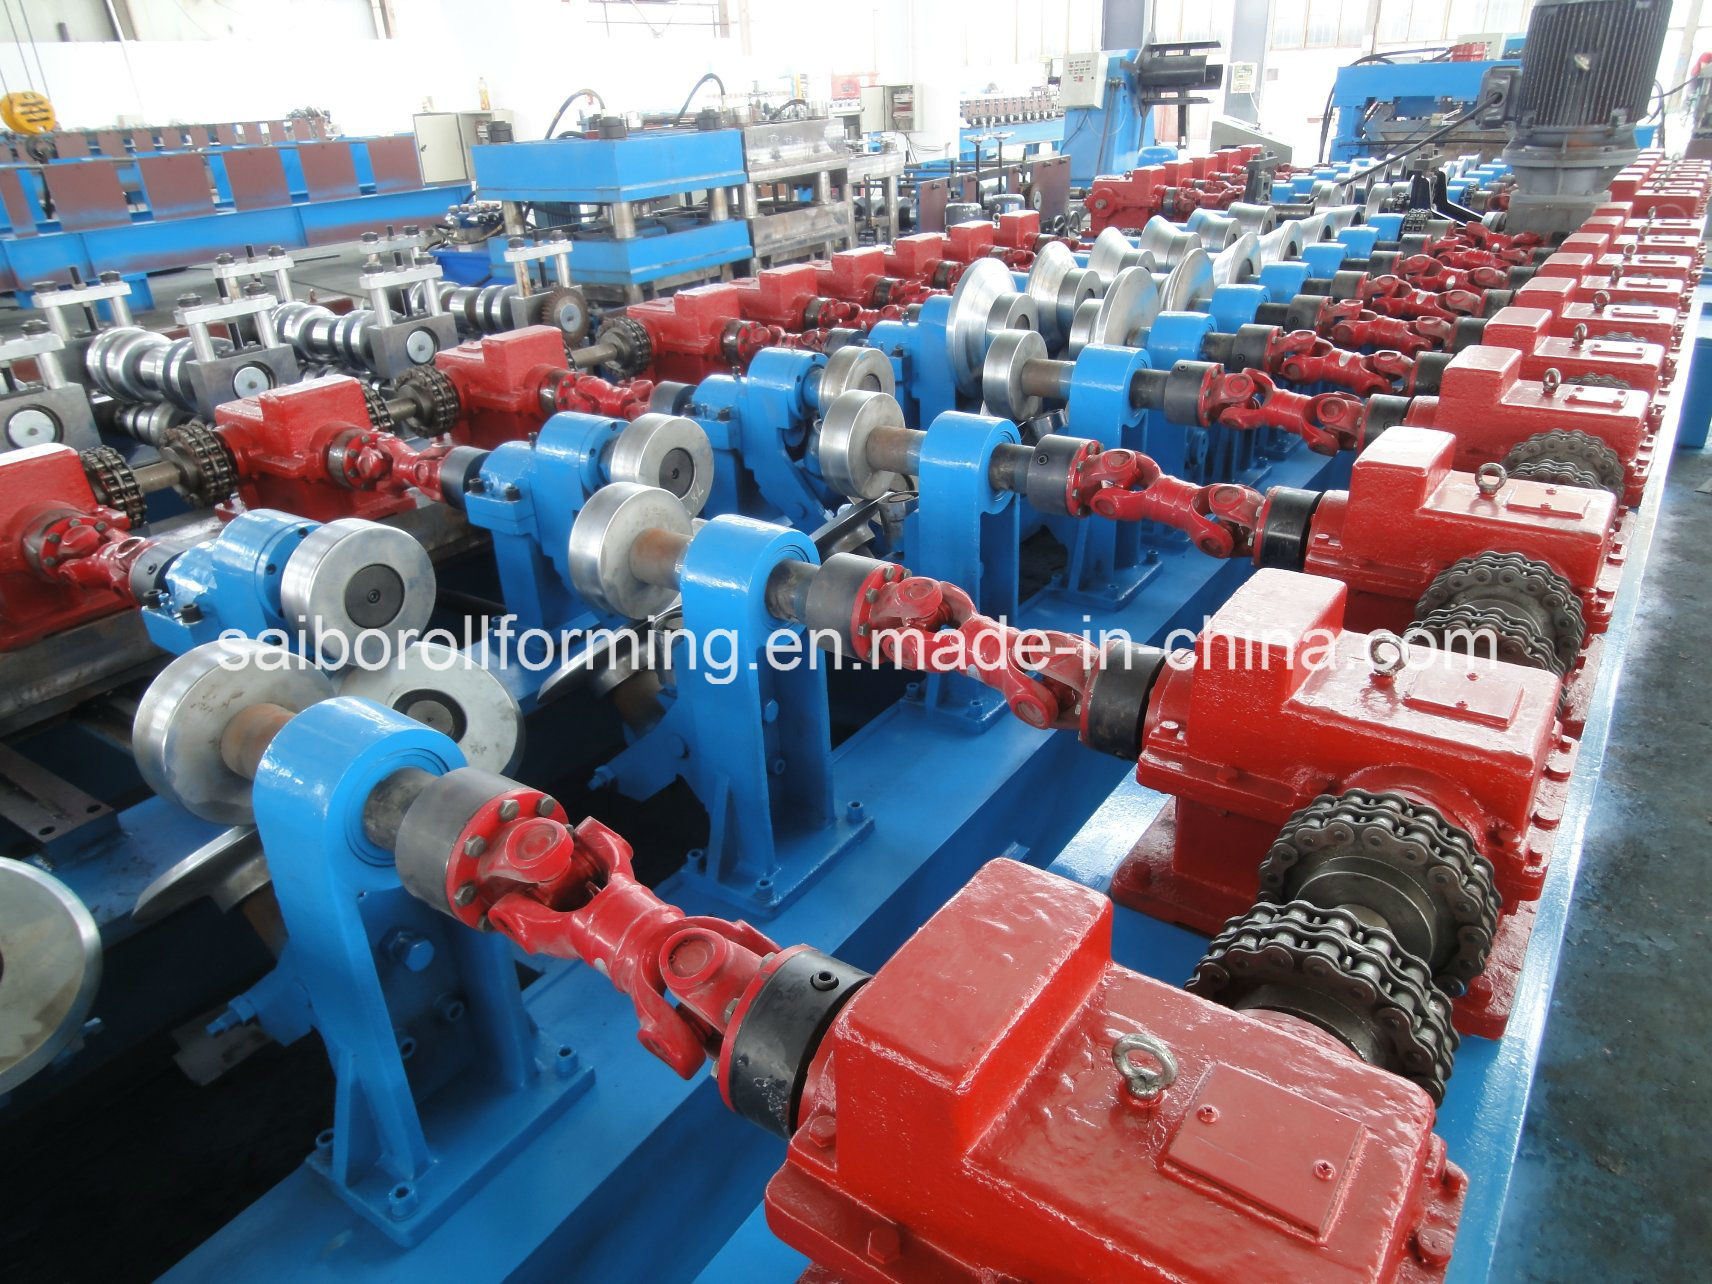 C&Z Purlin Interchangeable Forming Machine by Gearbox